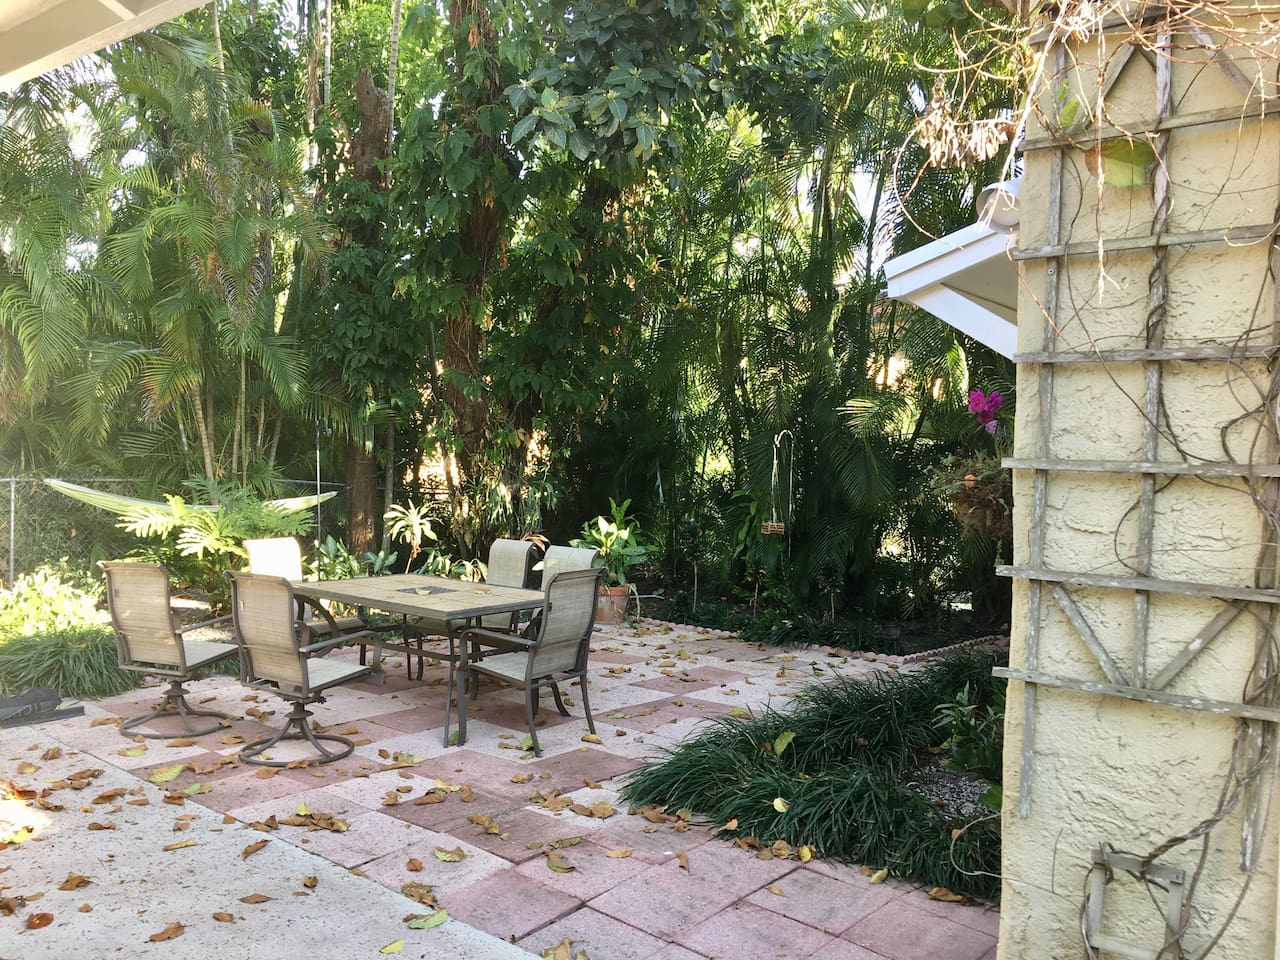 Shared Back Yard (Umbrella Not Pictured)